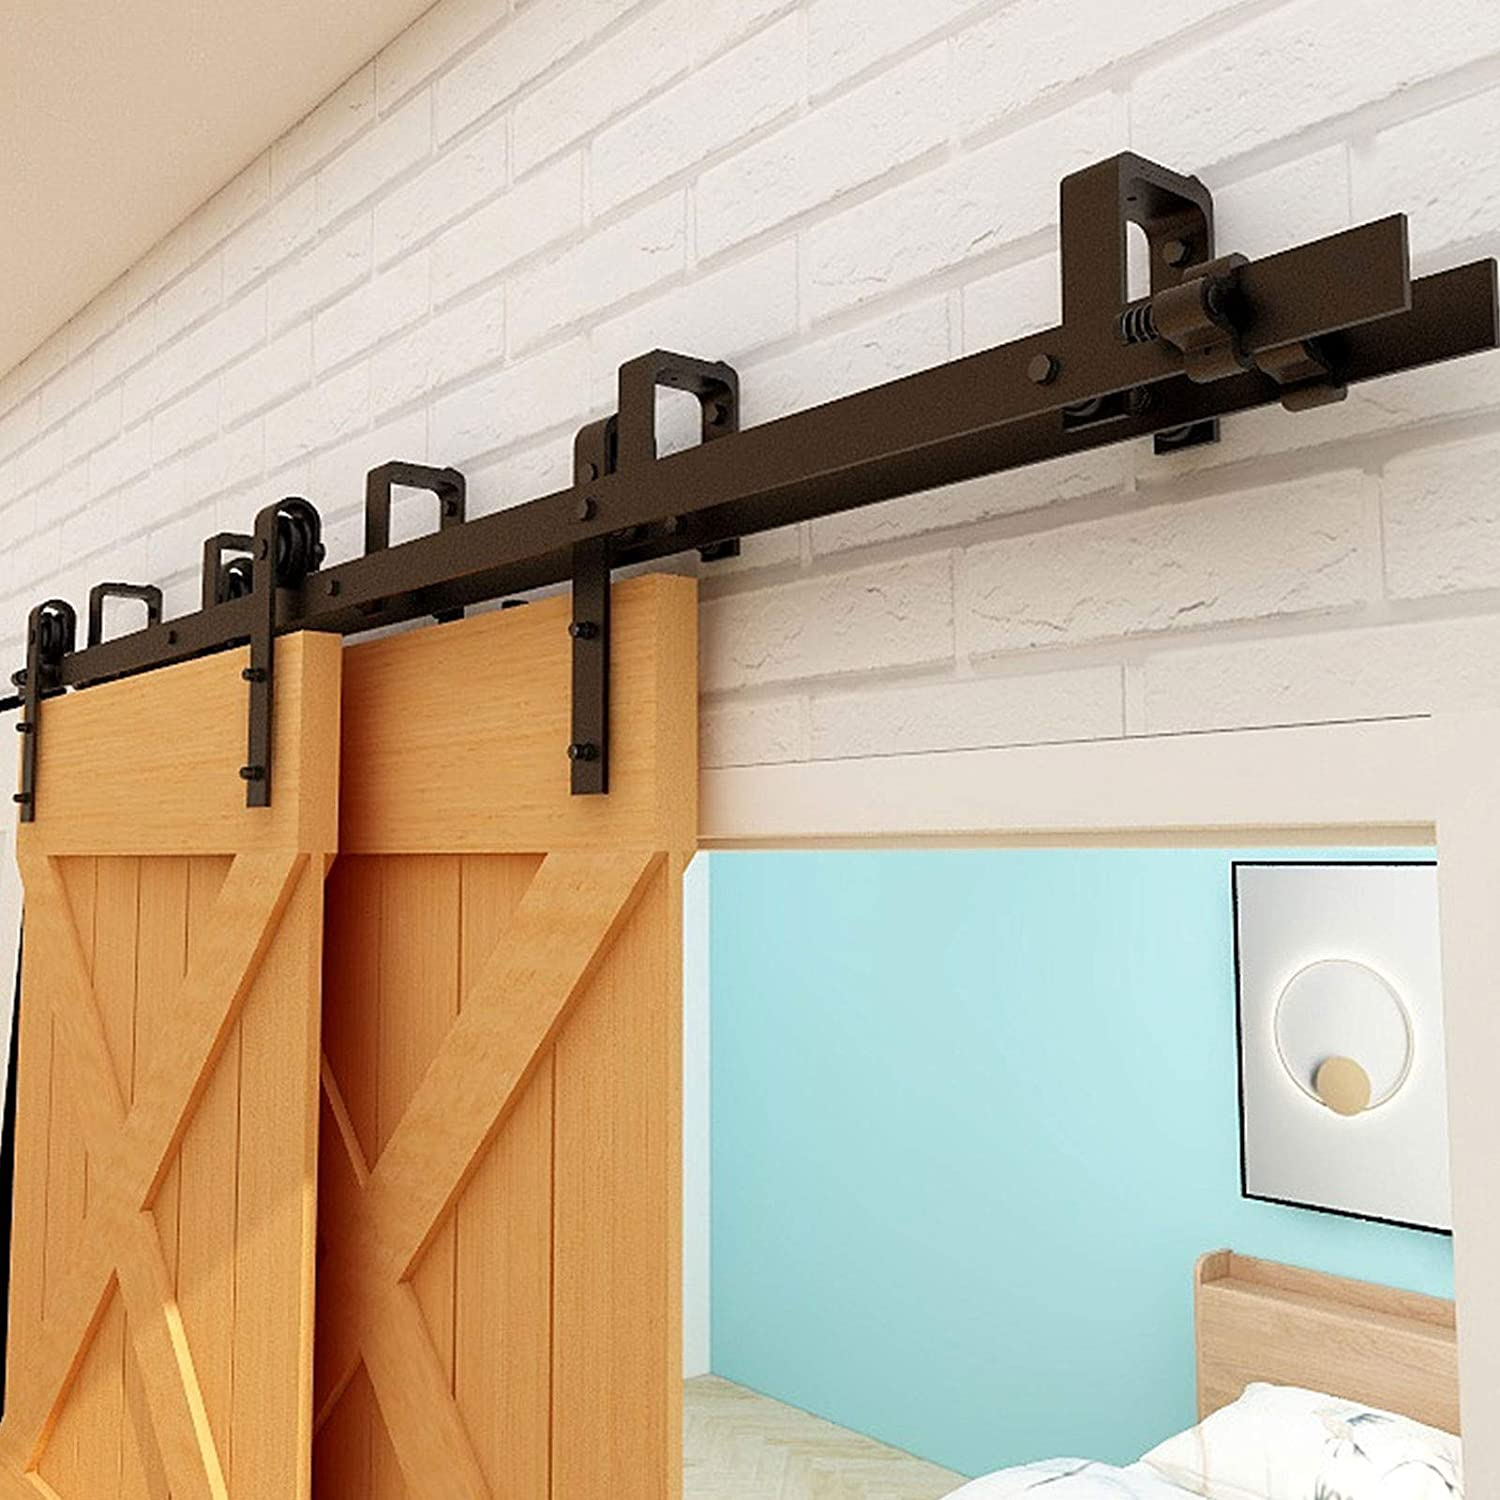 CCJH 10.5FT Bypass Sliding Barn Door L Kit Hardware Track Direct sale of manufacturer Double Max 56% OFF